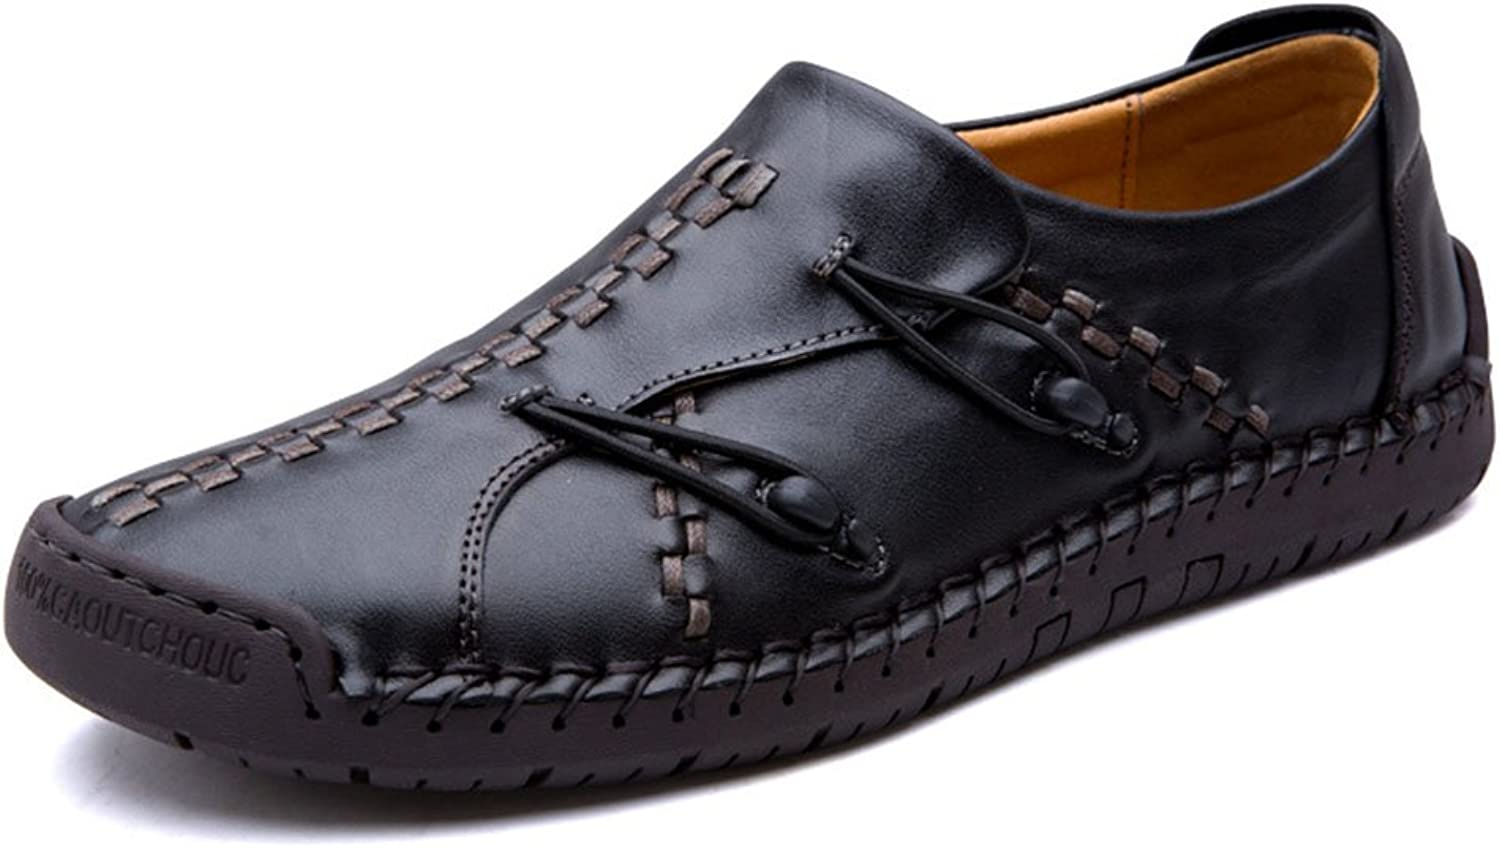 SHOESDQ Summer Men's Leather Leisure shoes Handmade Outdoor shoes